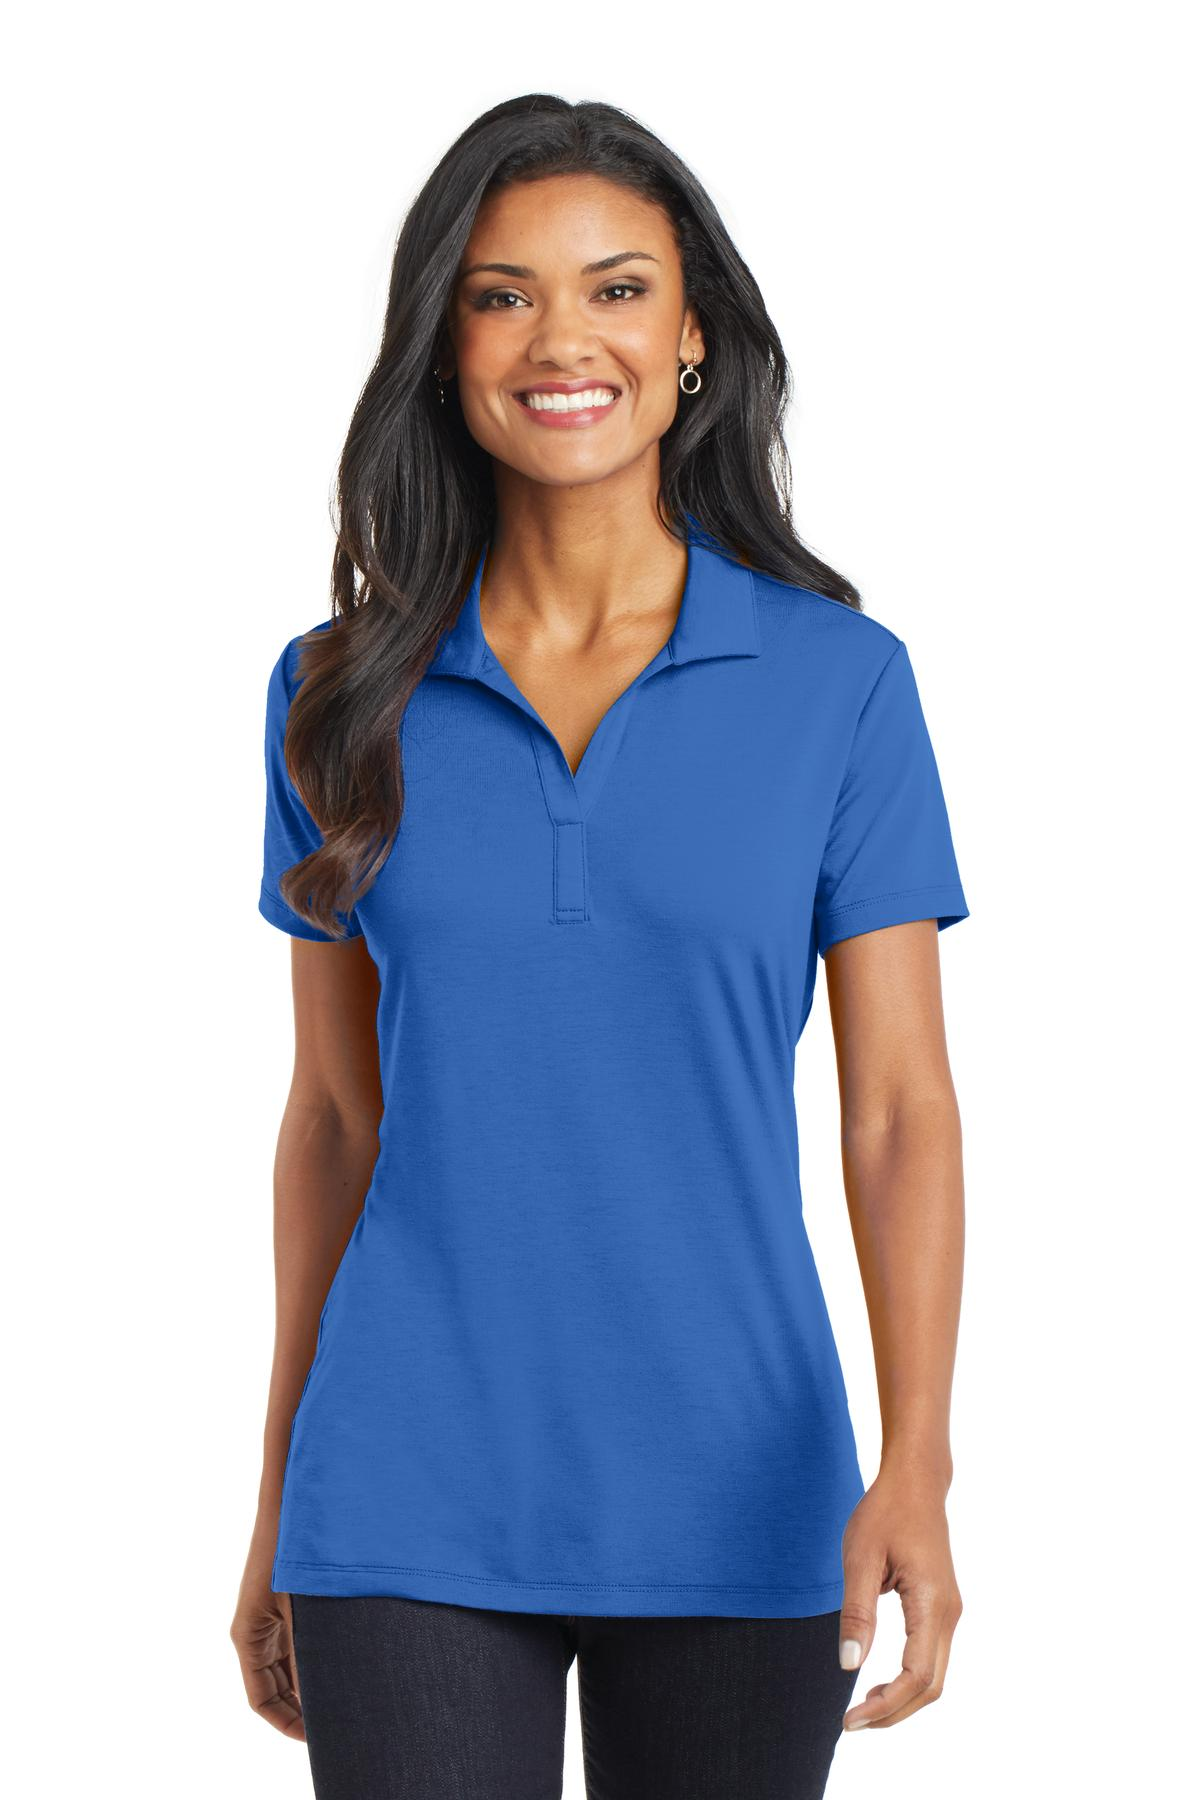 Port Authority® Ladies Cotton Touch Performance Polo.-Port Authority